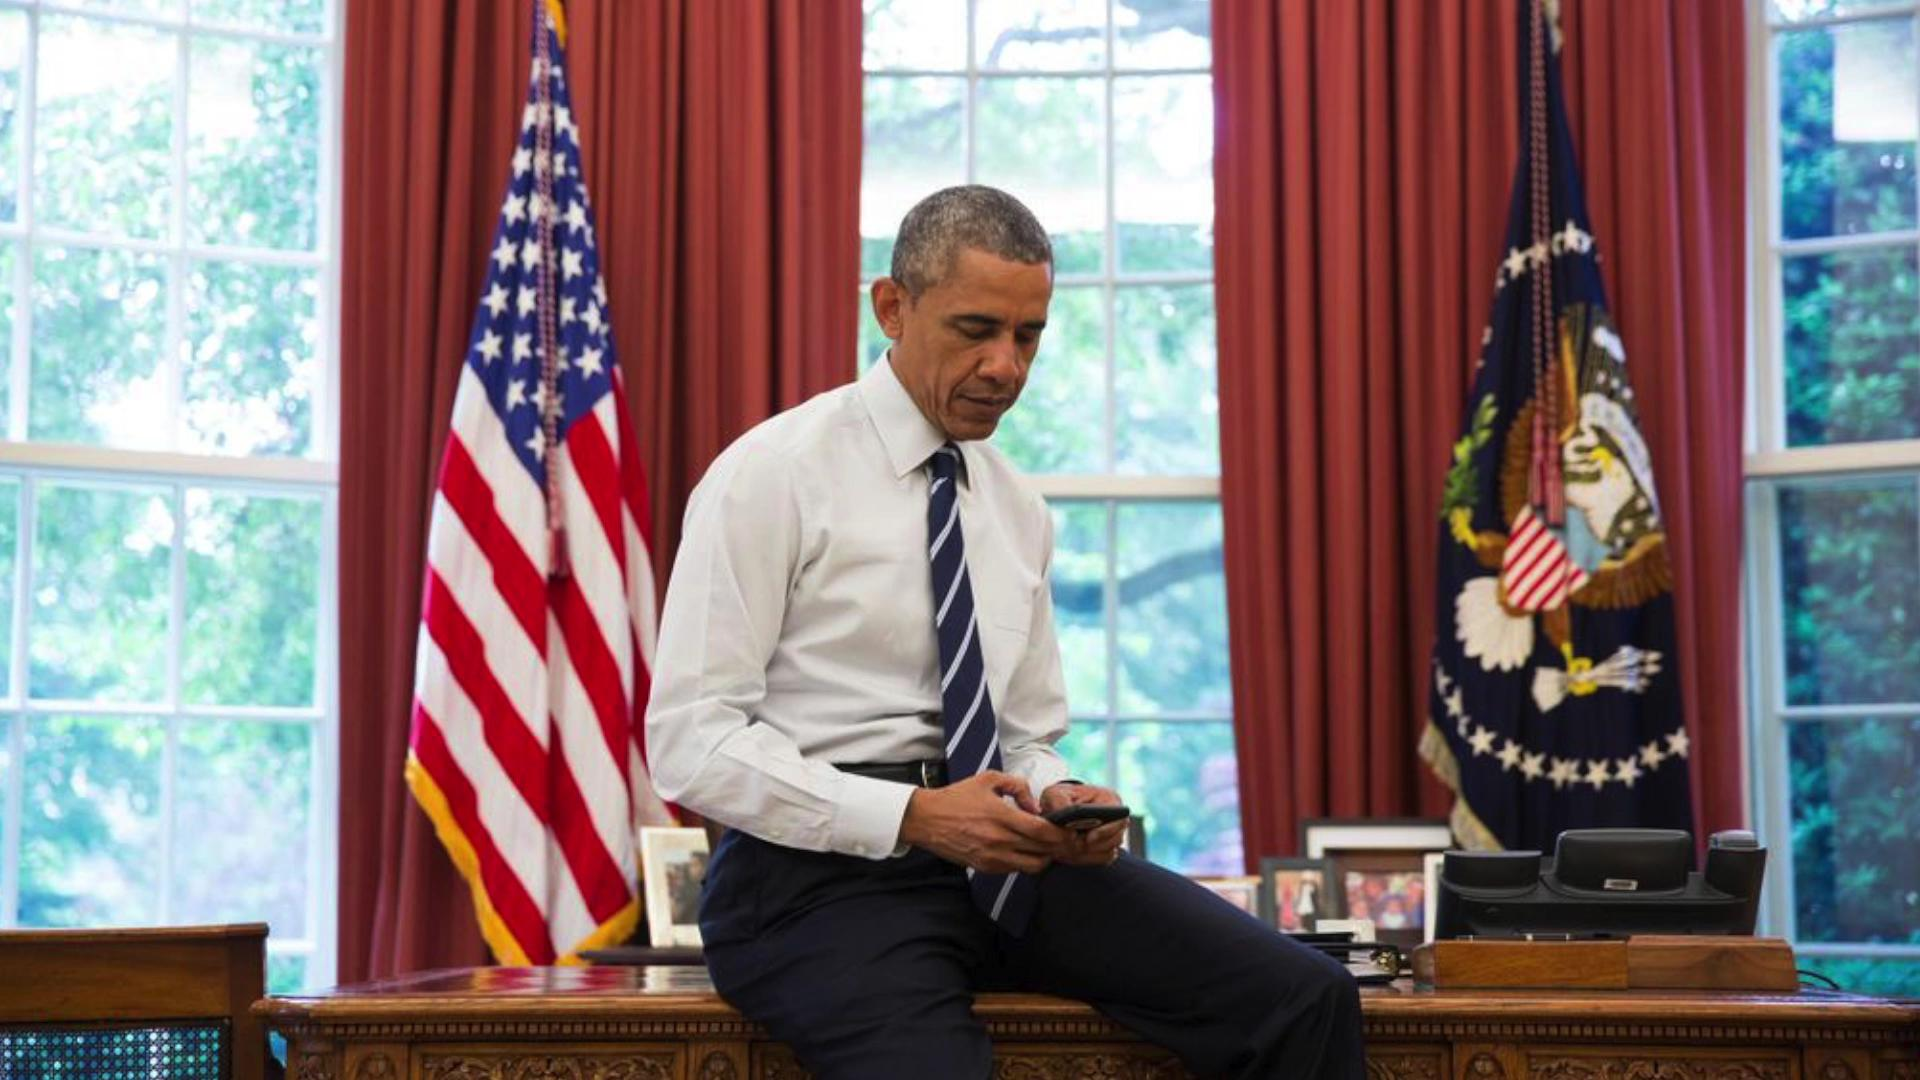 President Obama got his own Twitter account (for real this time)